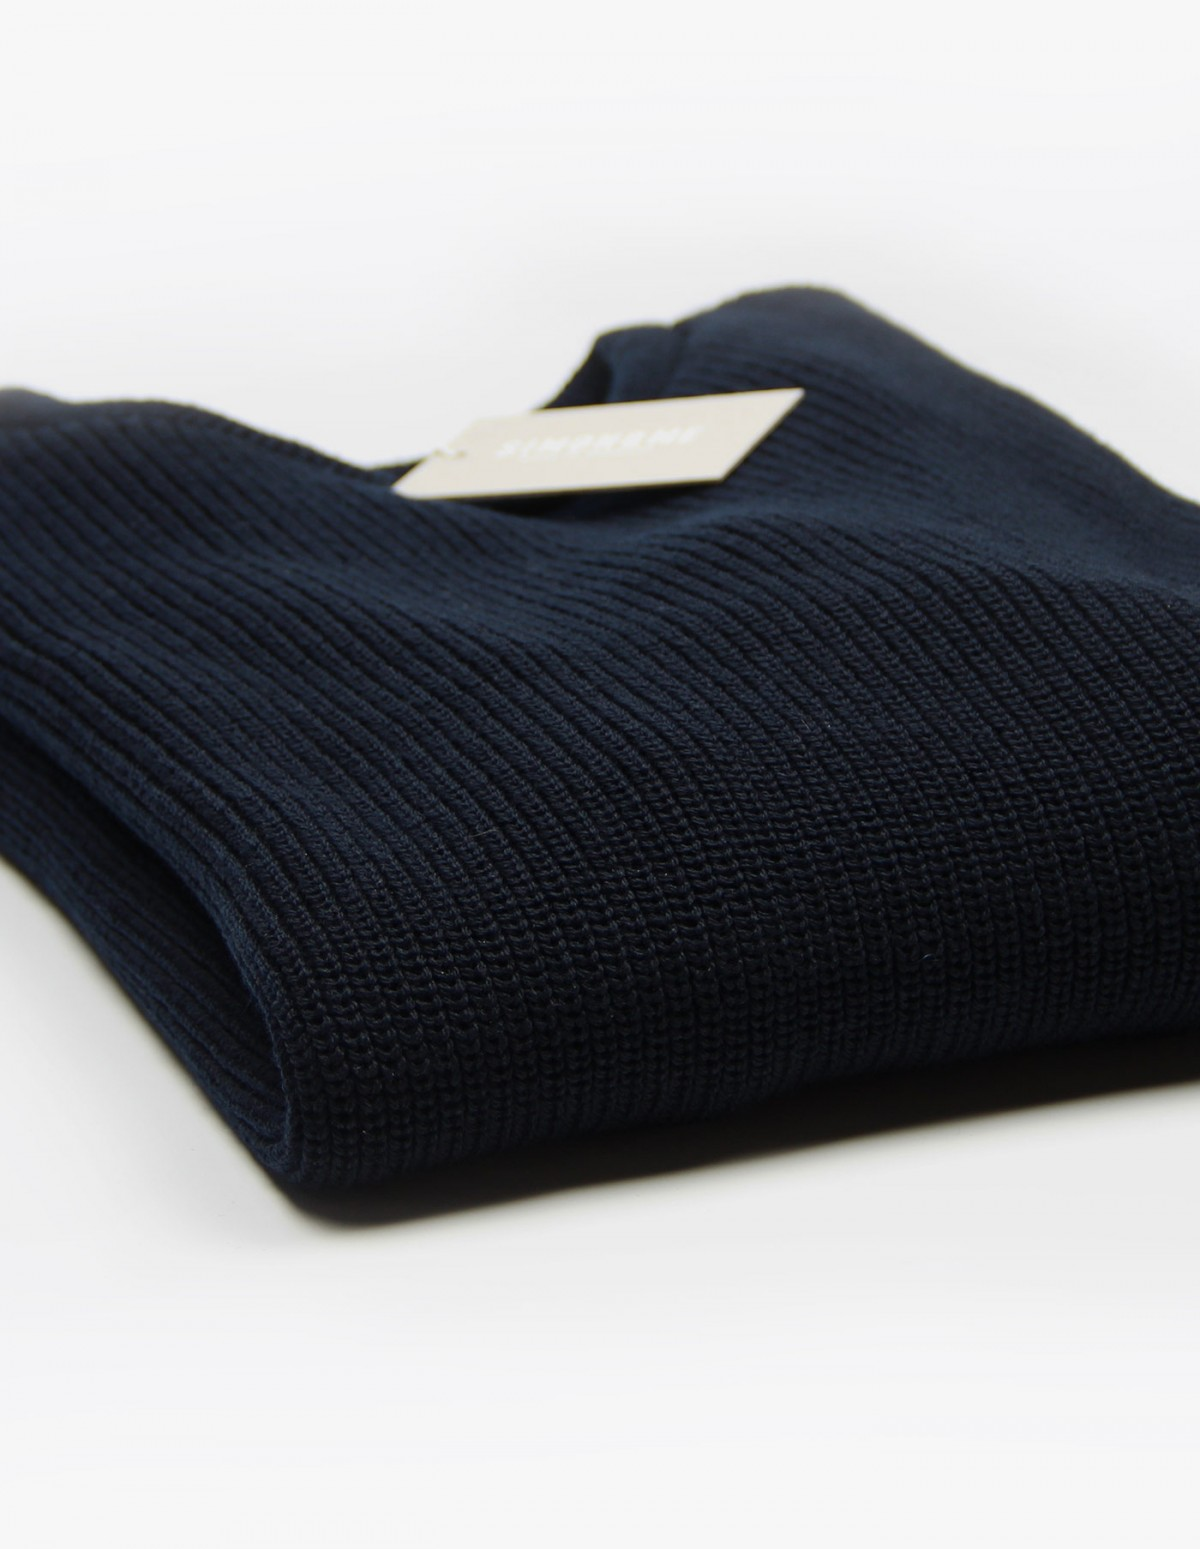 The Knitted Sweater in Navy